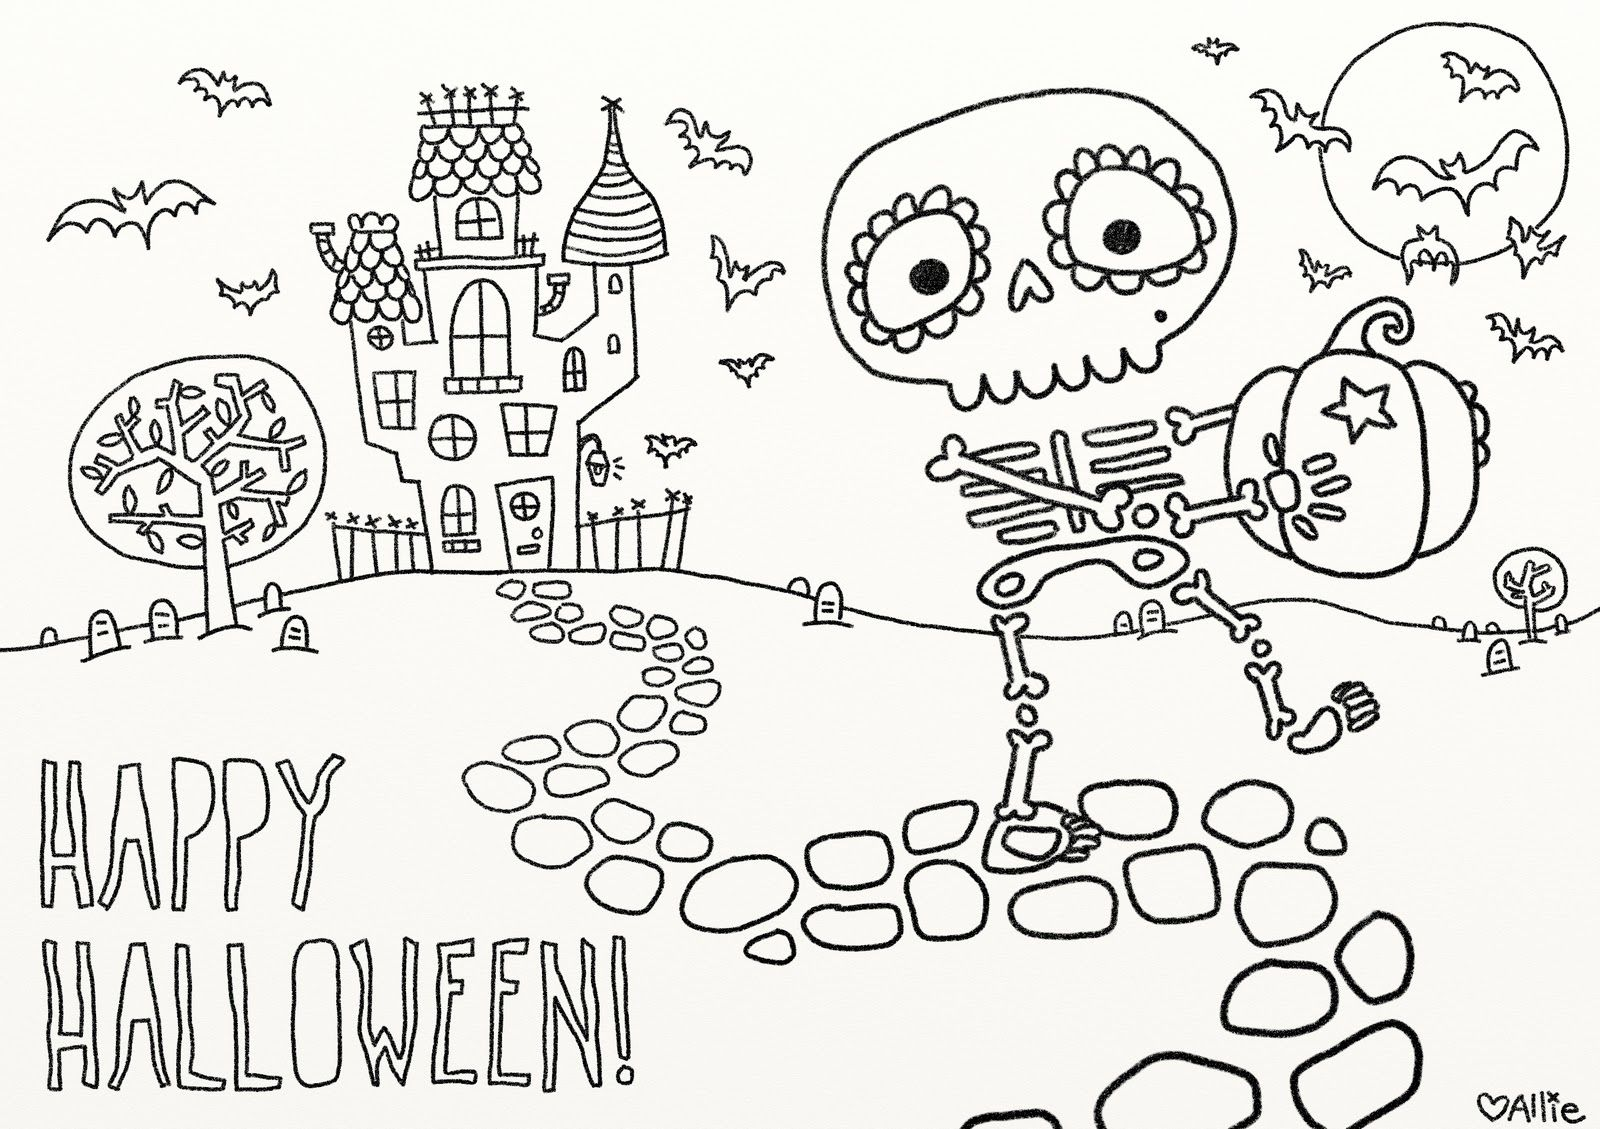 free-halloween-coloring-pages-for-kids-printable | classroom ...